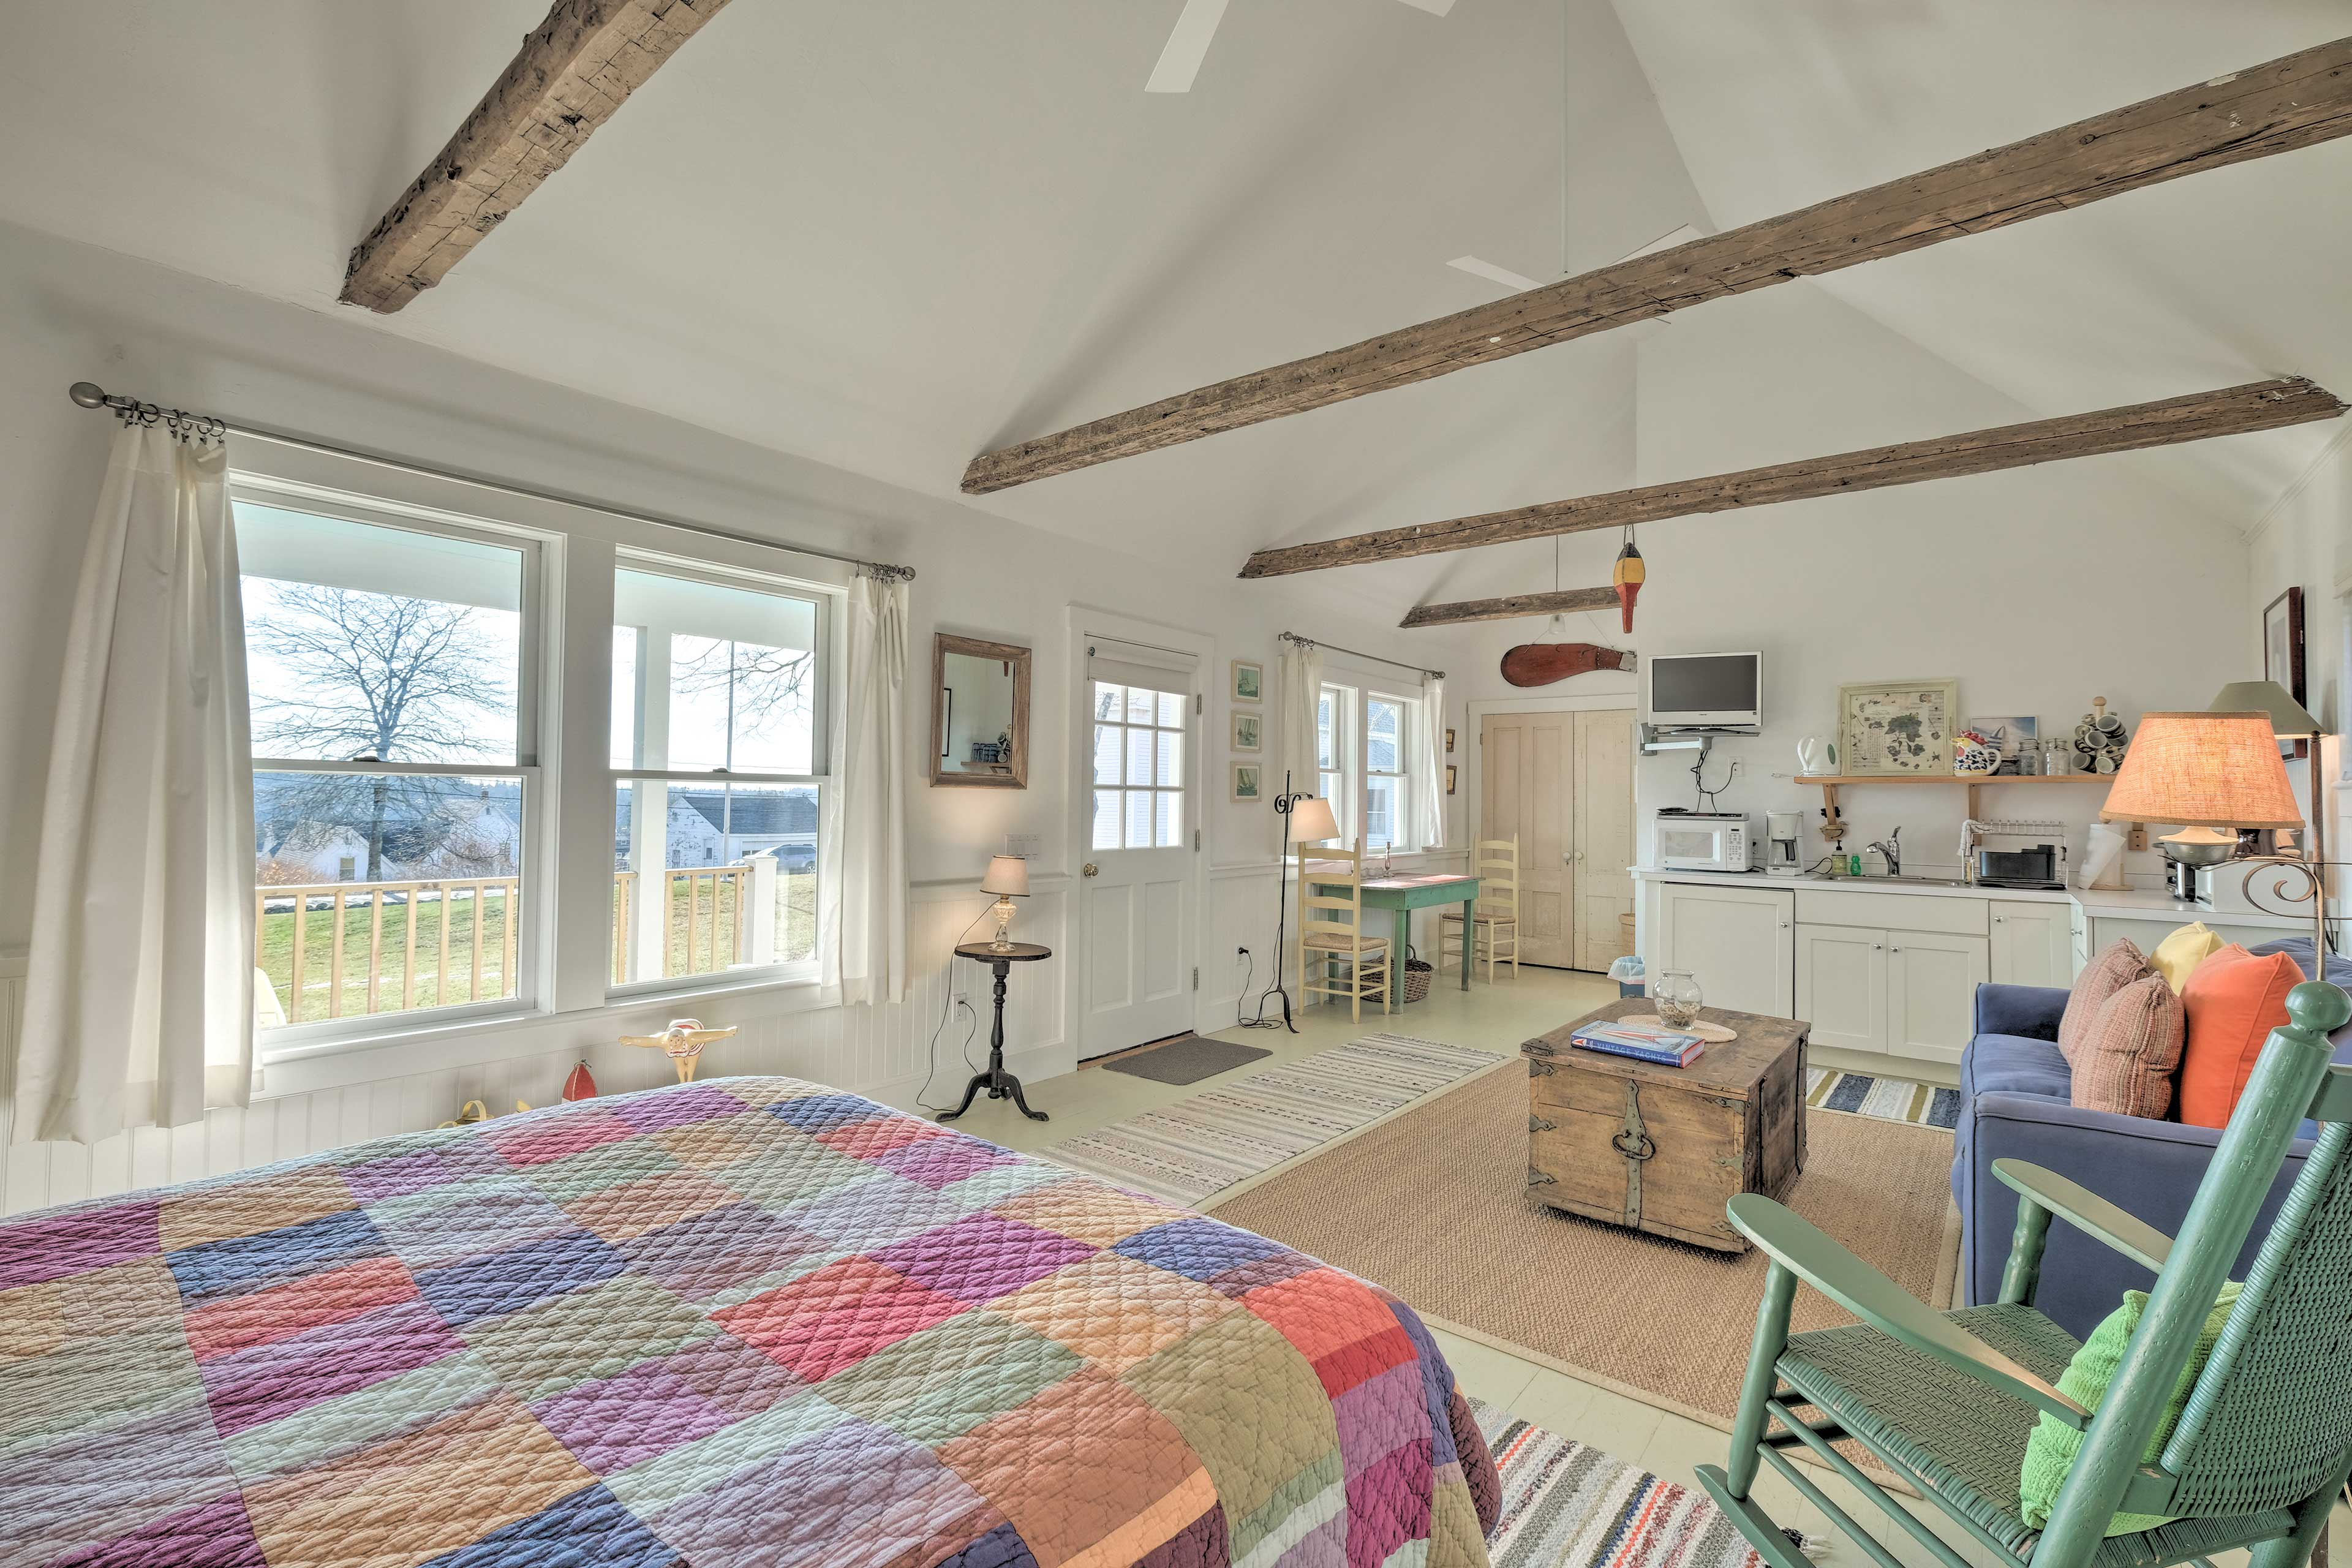 Natural light floods into the cottage.